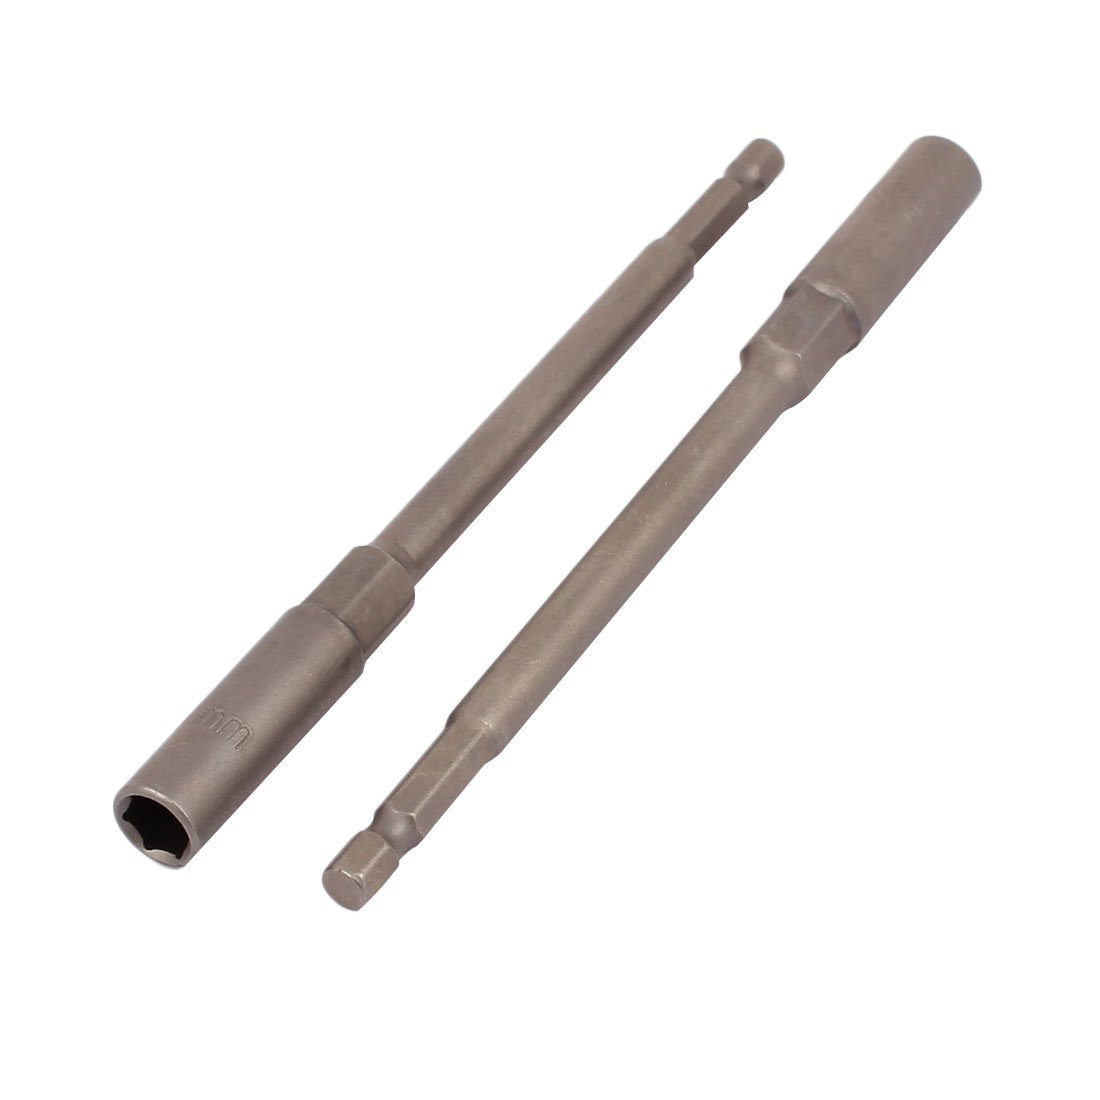 Sourcingmap a16050500ux0883 150 mm Long 8 mm Hex Socket Magnetic Nut Driver Set Adapter Drill Bit - Grey (2-Piece)